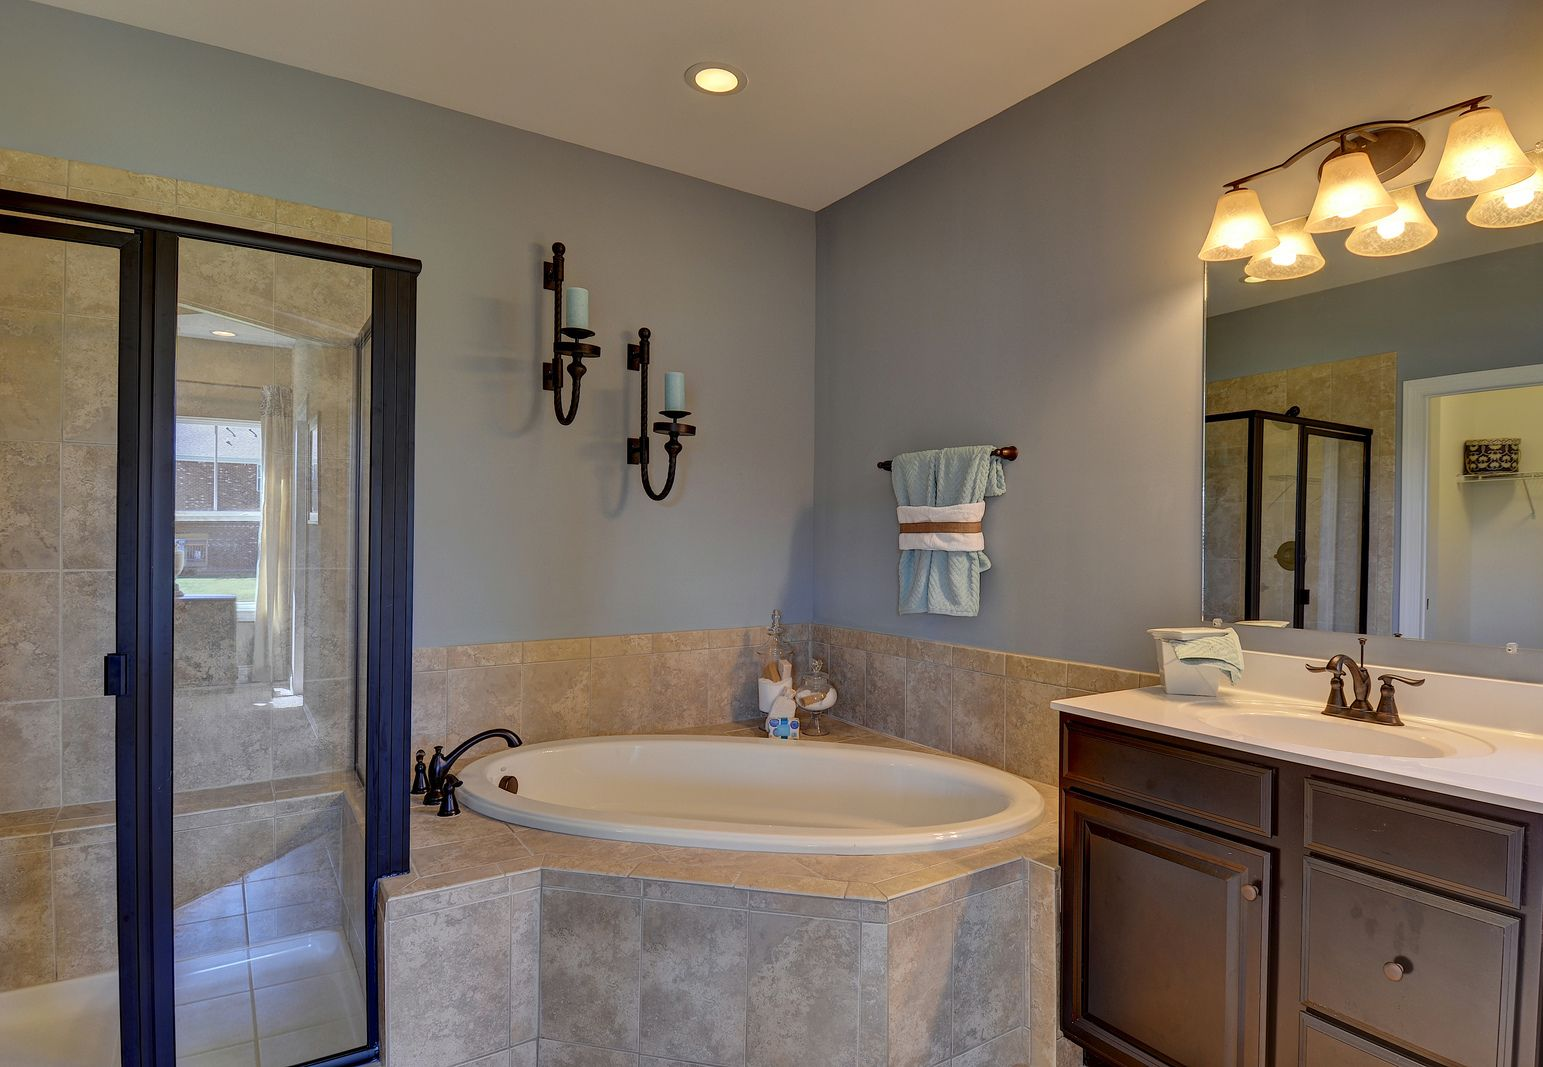 Bathroom featured in the Esquire Place By Ryan Homes in Sussex, DE